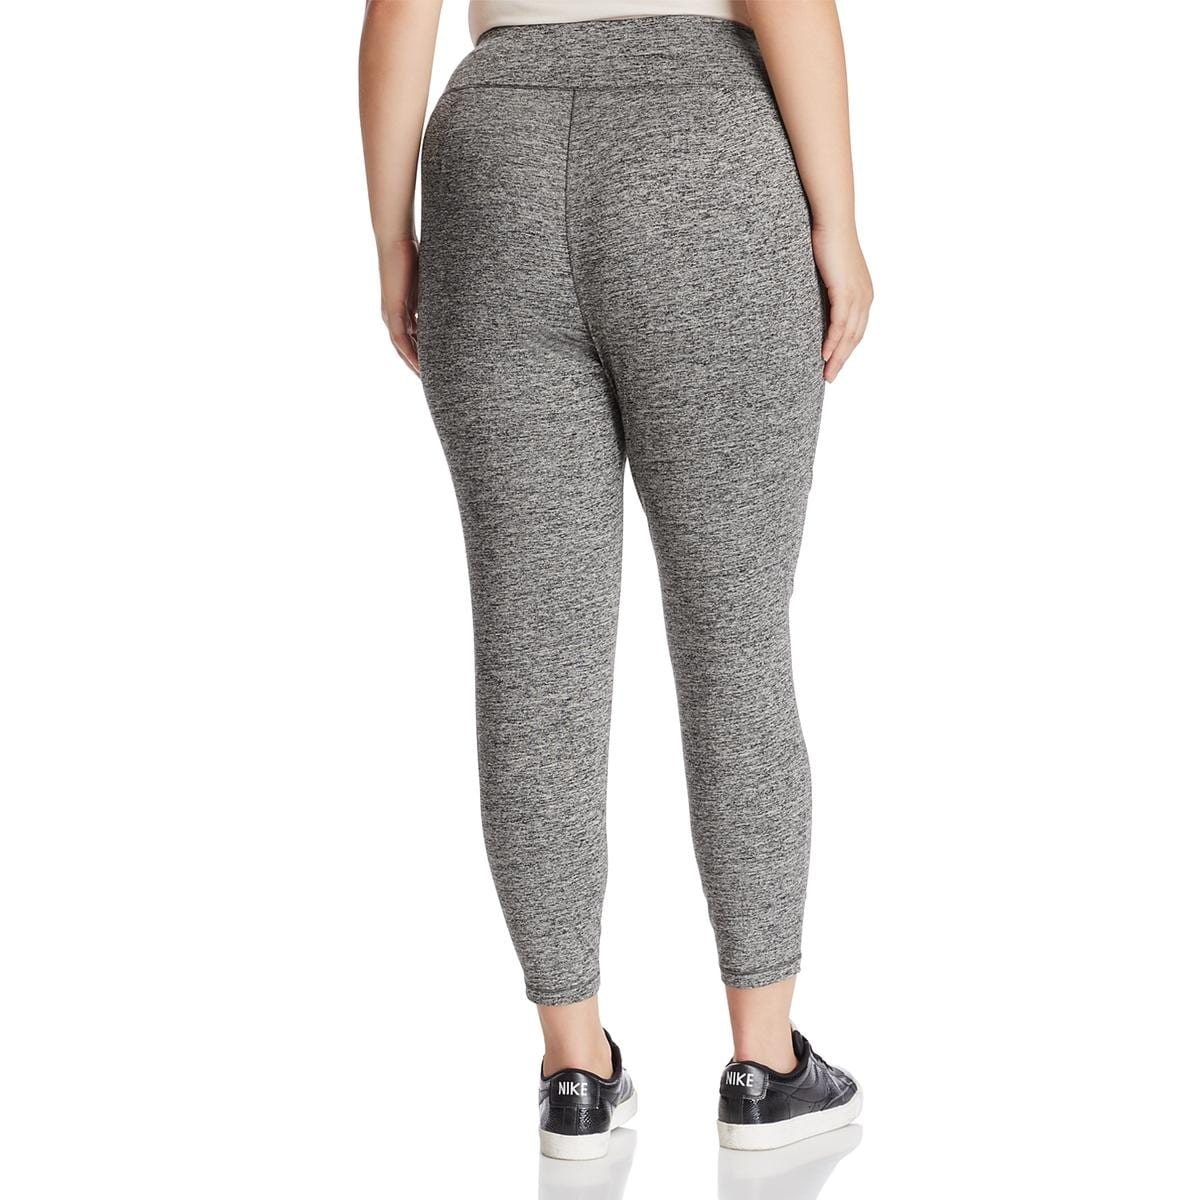 d8b05f3b401ba Shop Eileen Fisher Womens Plus Athletic Leggings Fitness Yoga - 1X - Free  Shipping Today - Overstock.com - 25780792